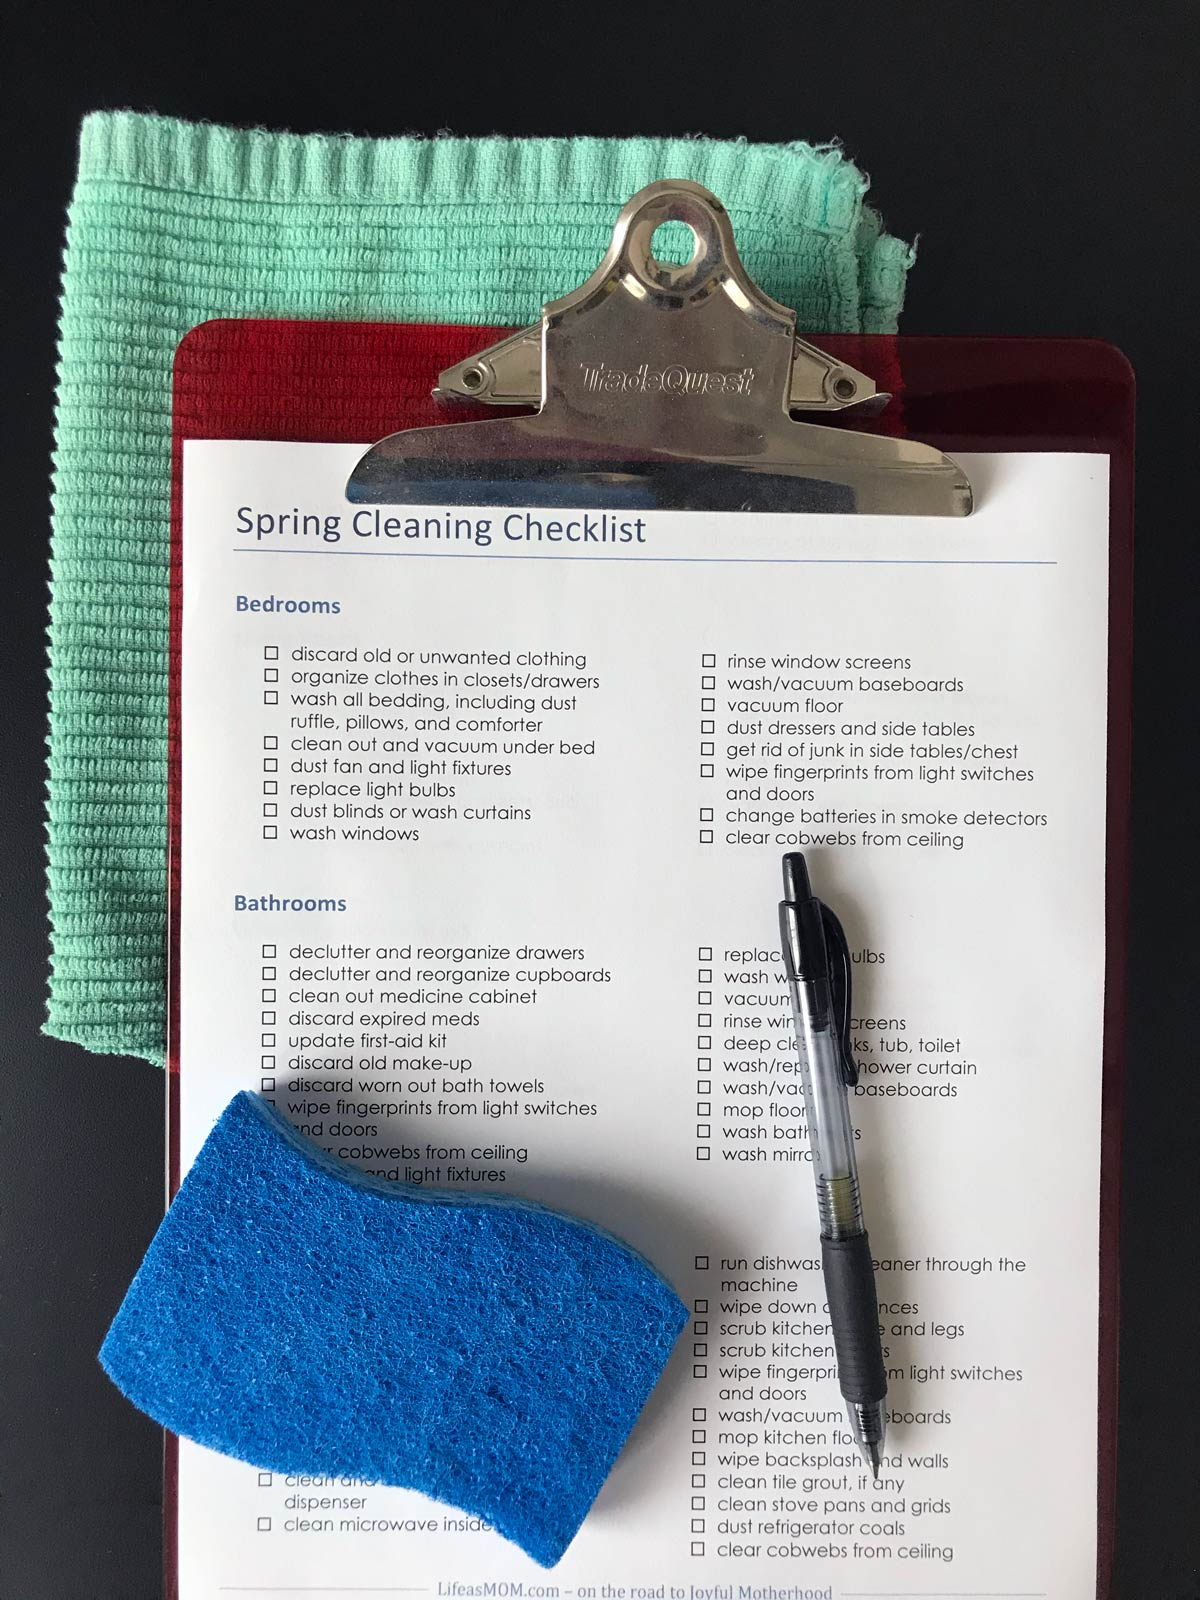 cleaning checklist on clipboard